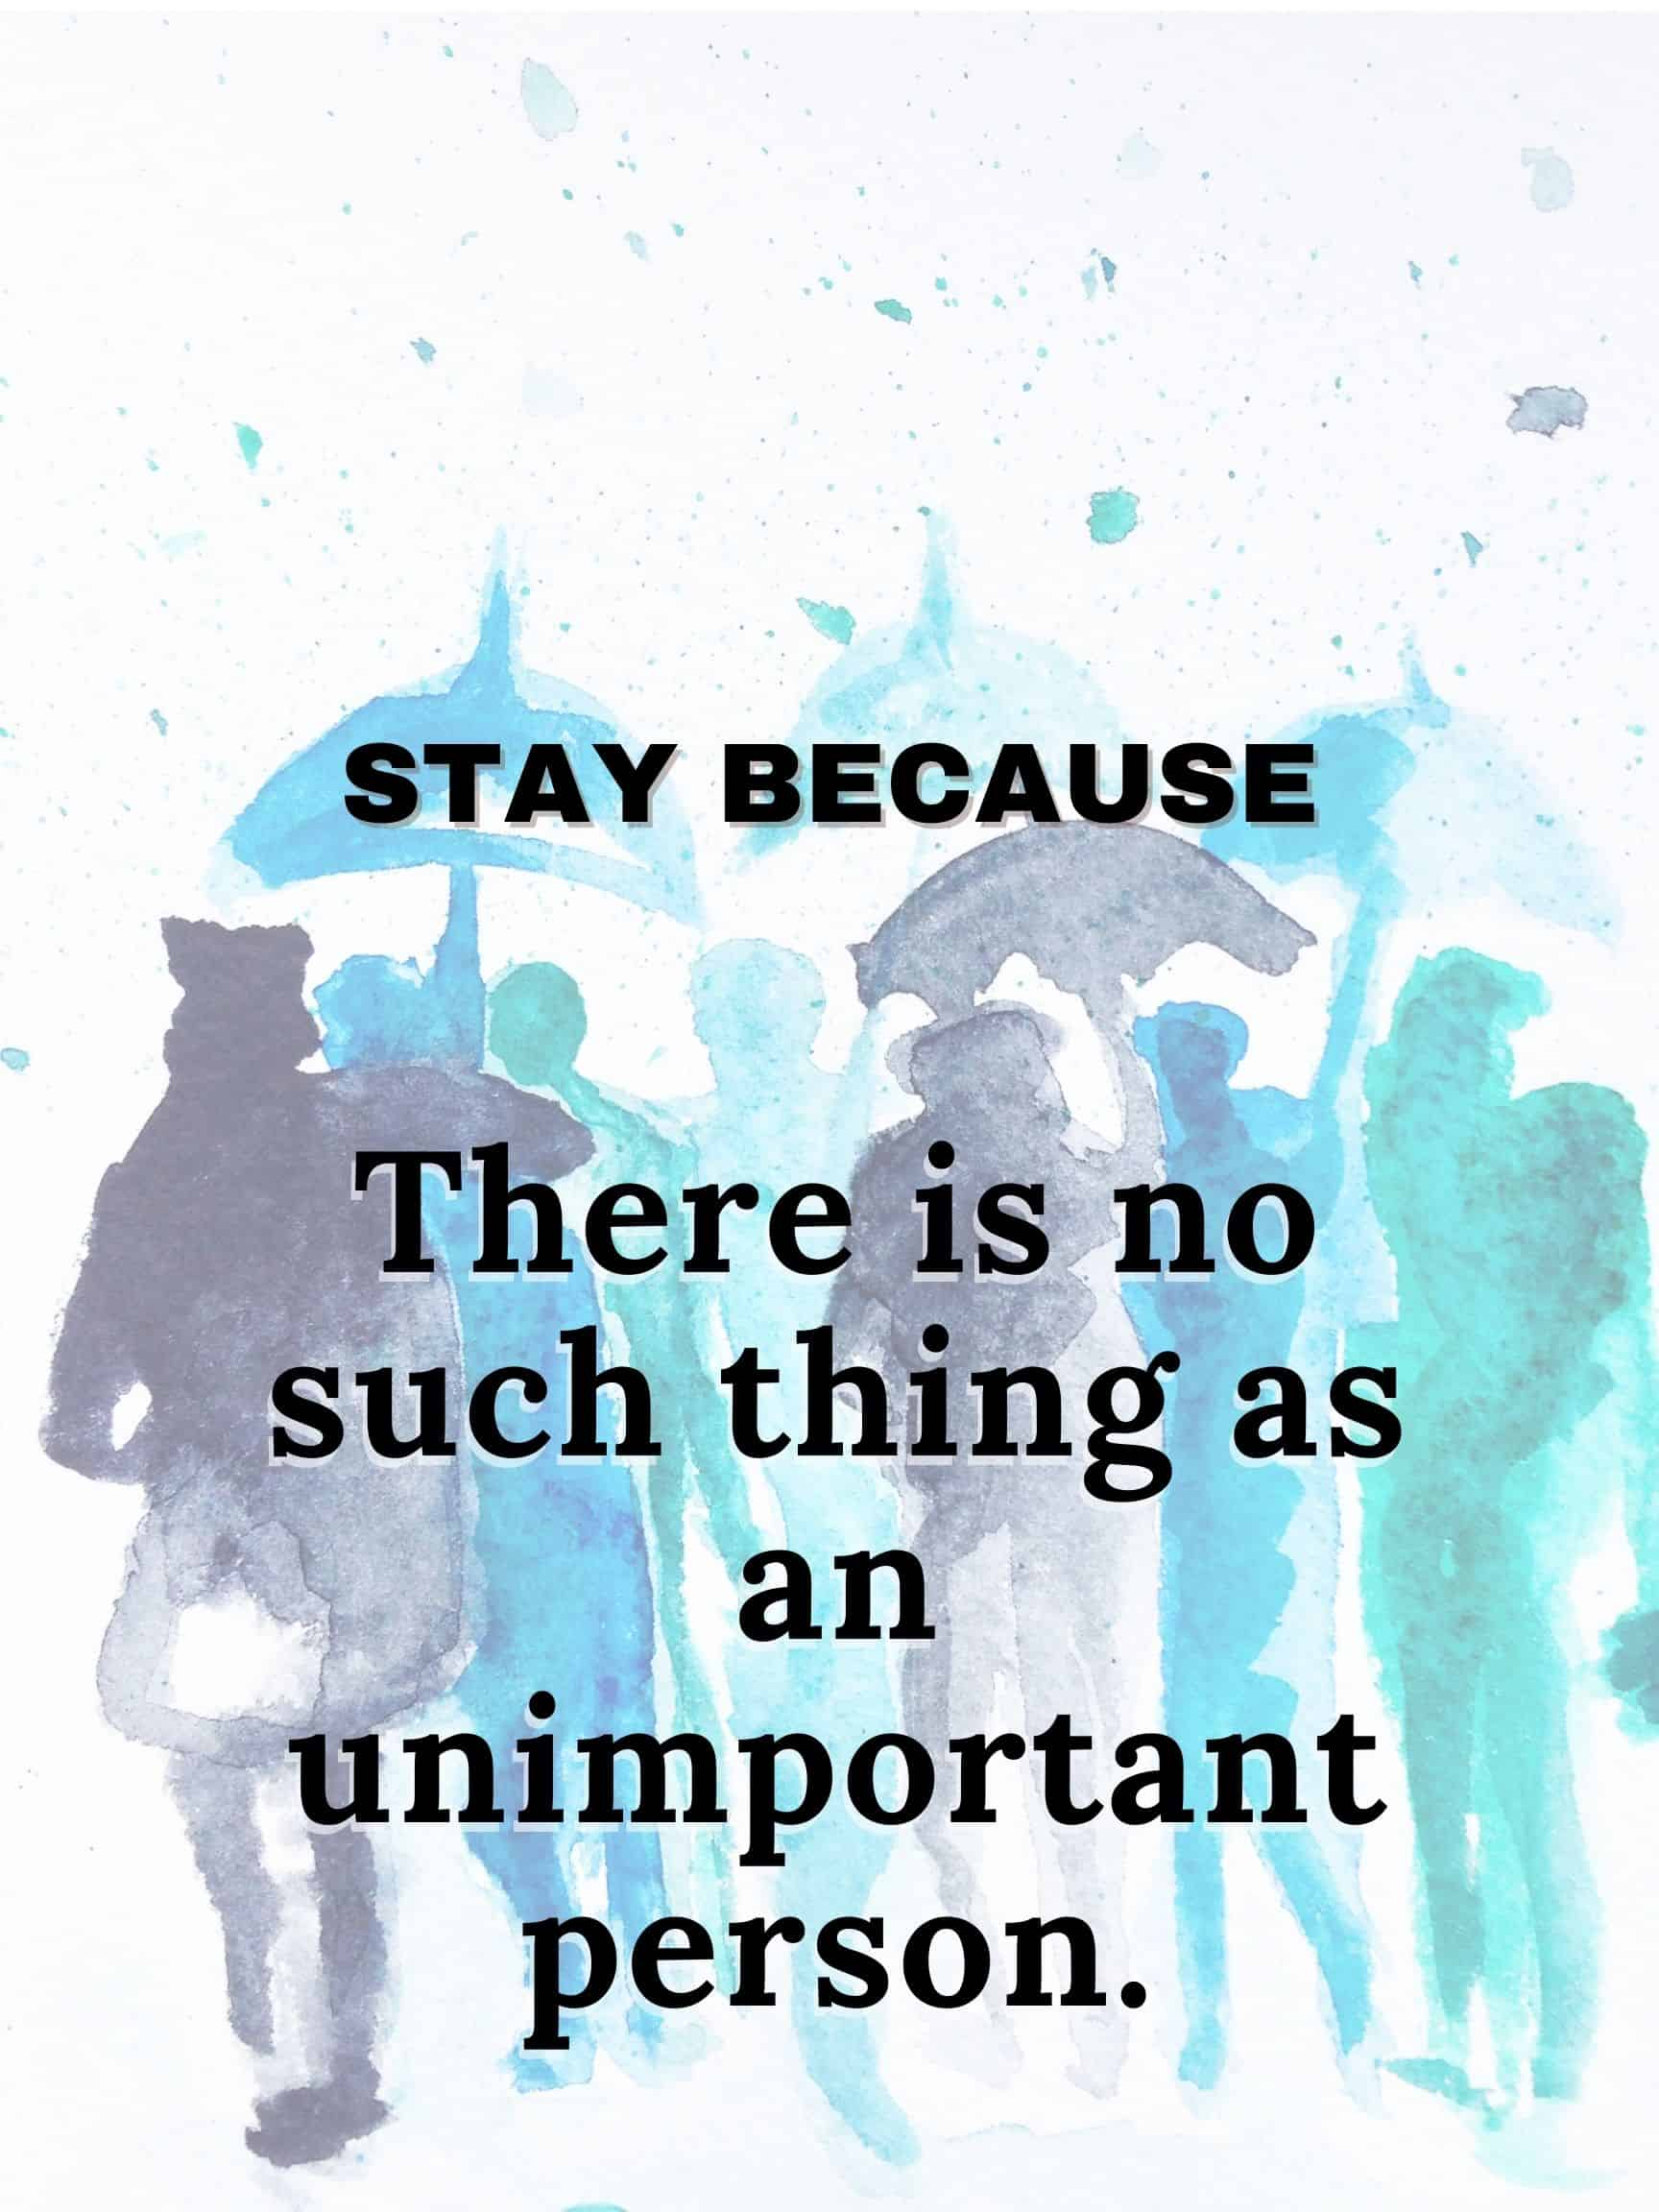 There is no such thing as an unimportant person #staybecause